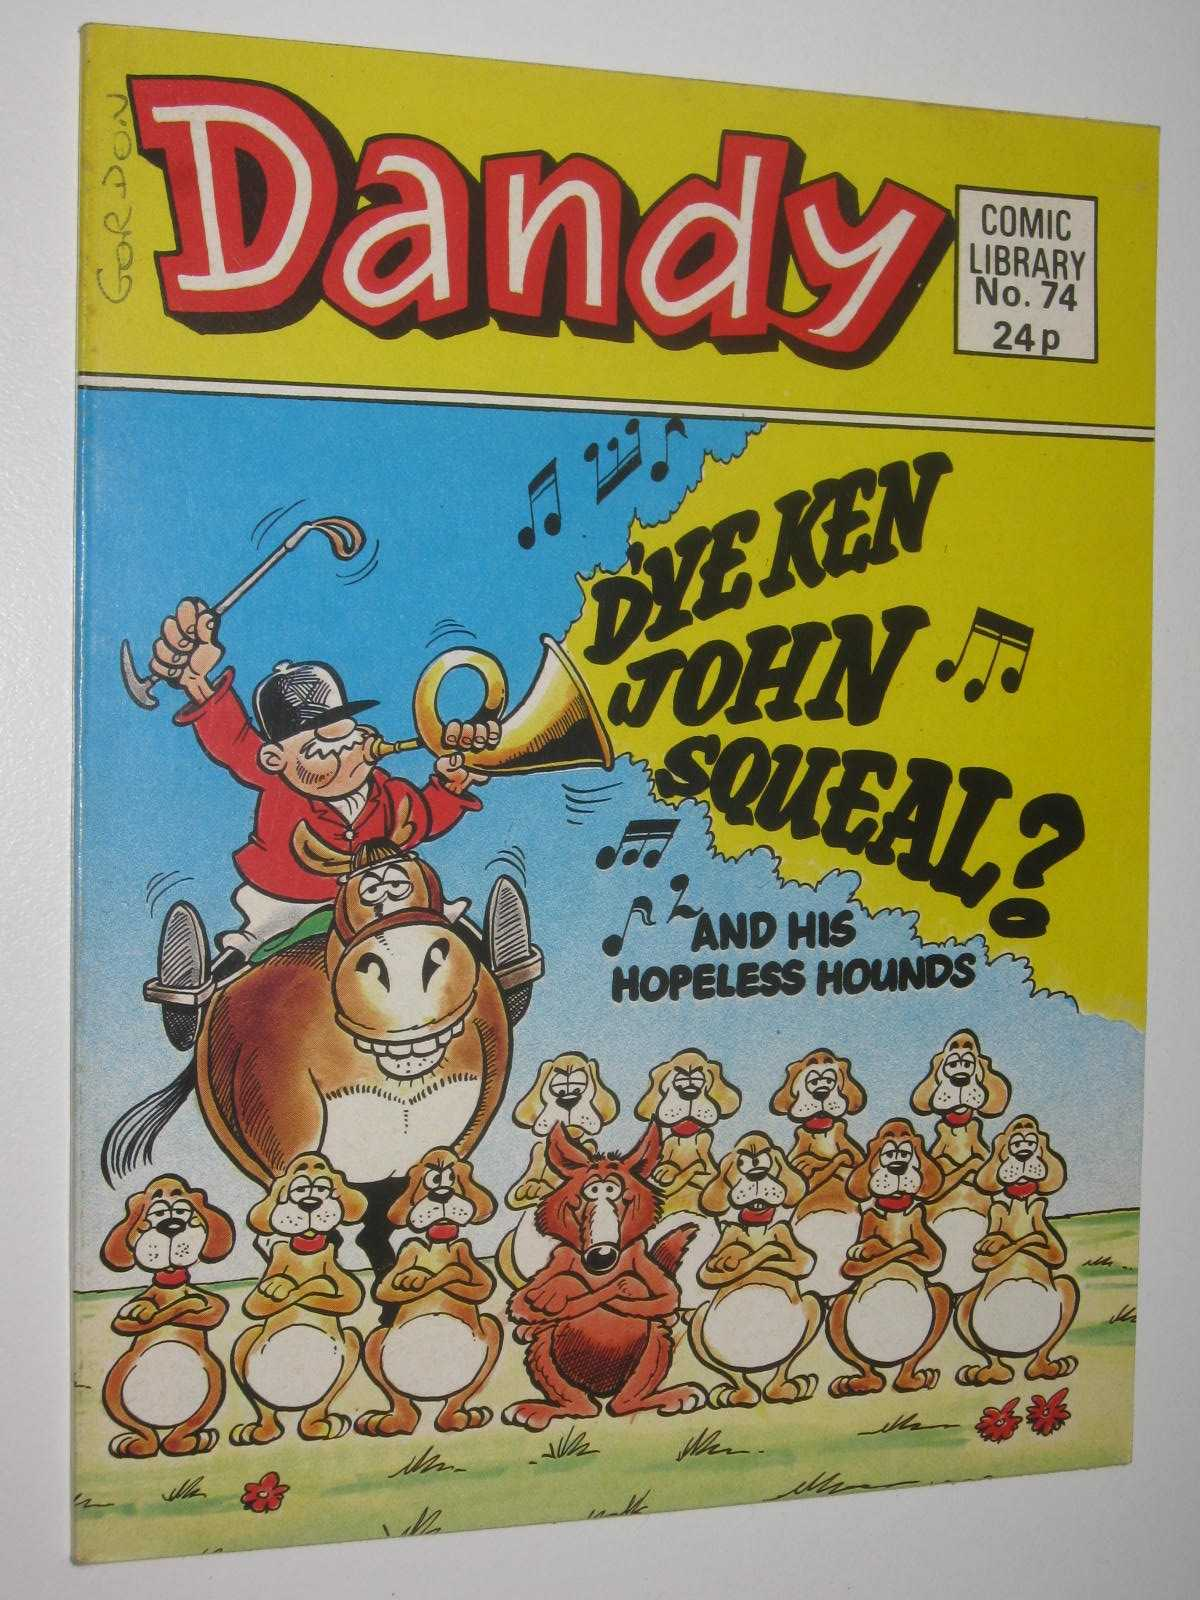 Image for D'ye Ken John Squeal and His Hopeless Hounds - Dandy Comic Library #74